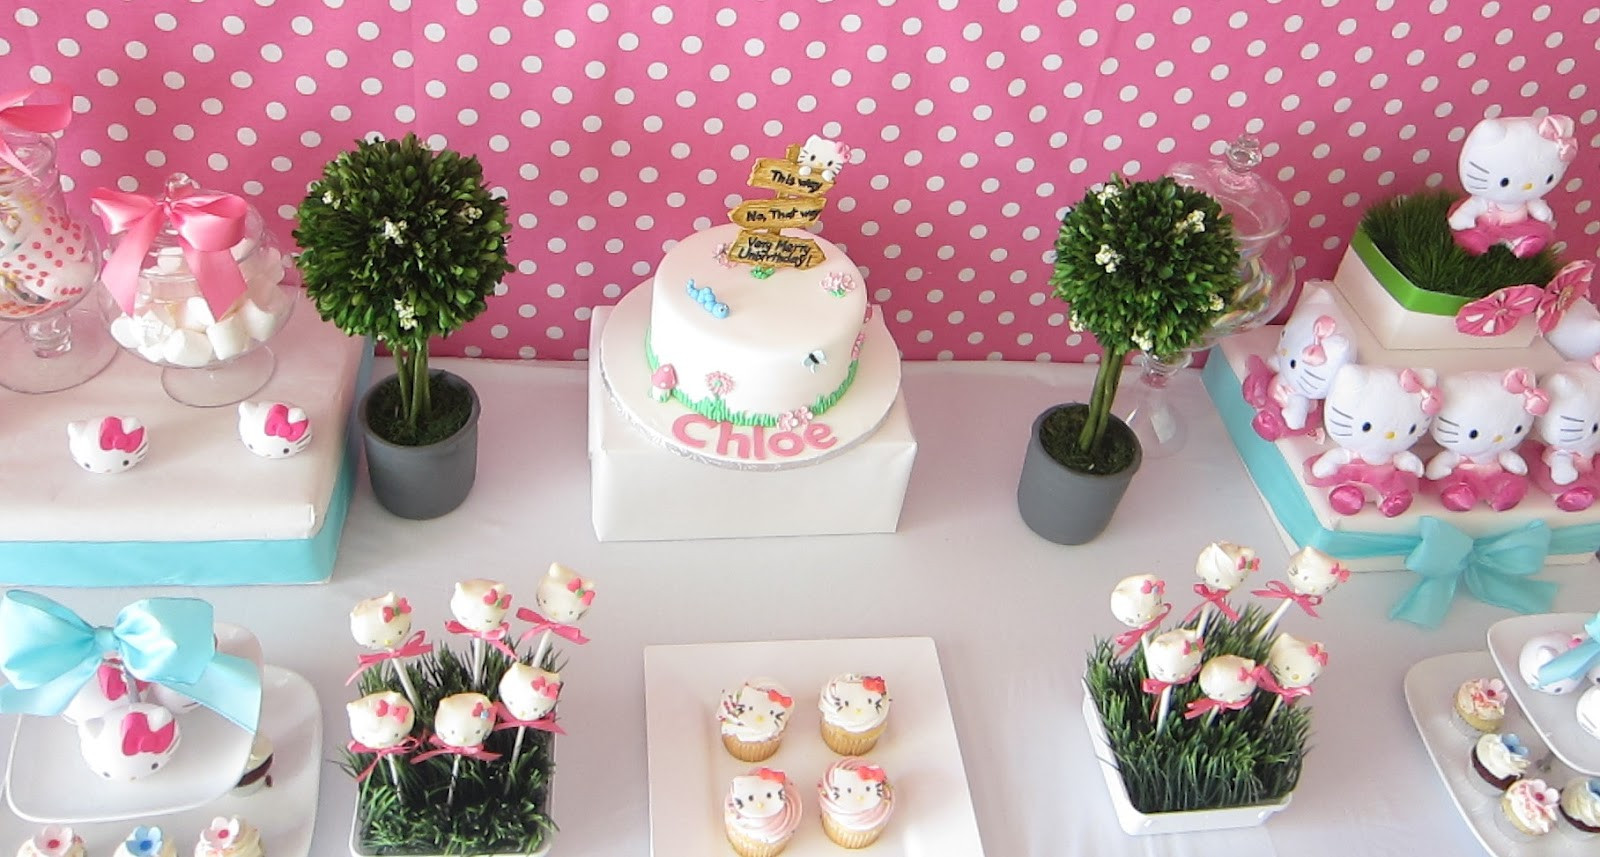 Best ideas about Hello Kitty Birthday Decorations . Save or Pin SimplyIced Party Details Hello Kitty Birthday Party Now.